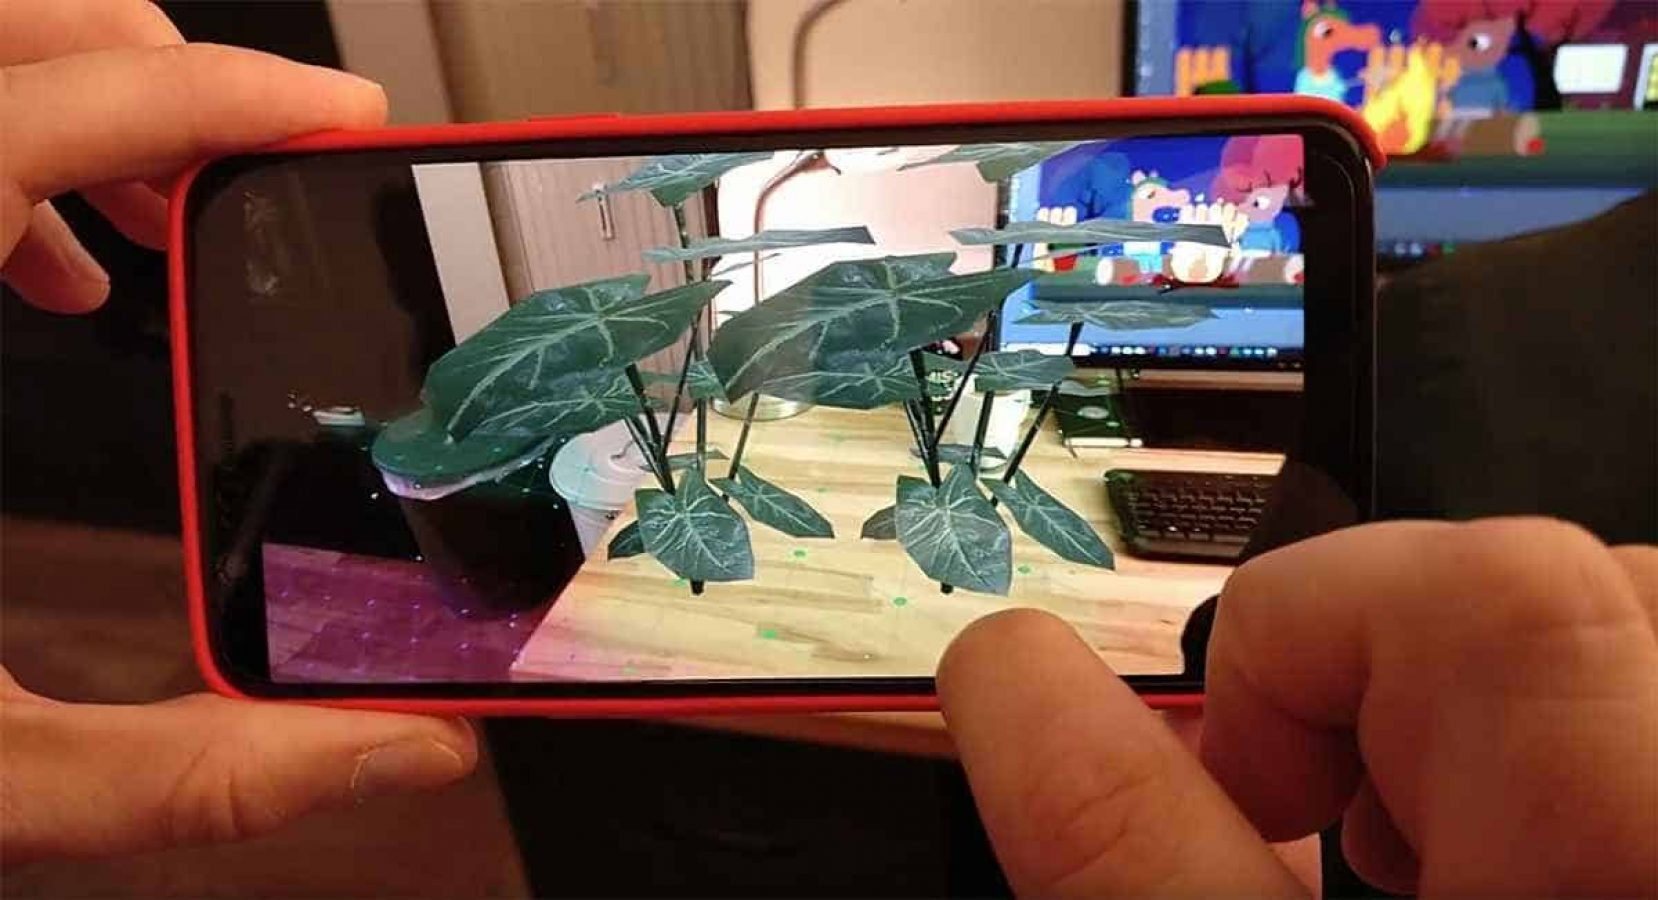 ARCore / AR / Augmented Reality / Ostfriesland / Tim Bruns - Werbung & so